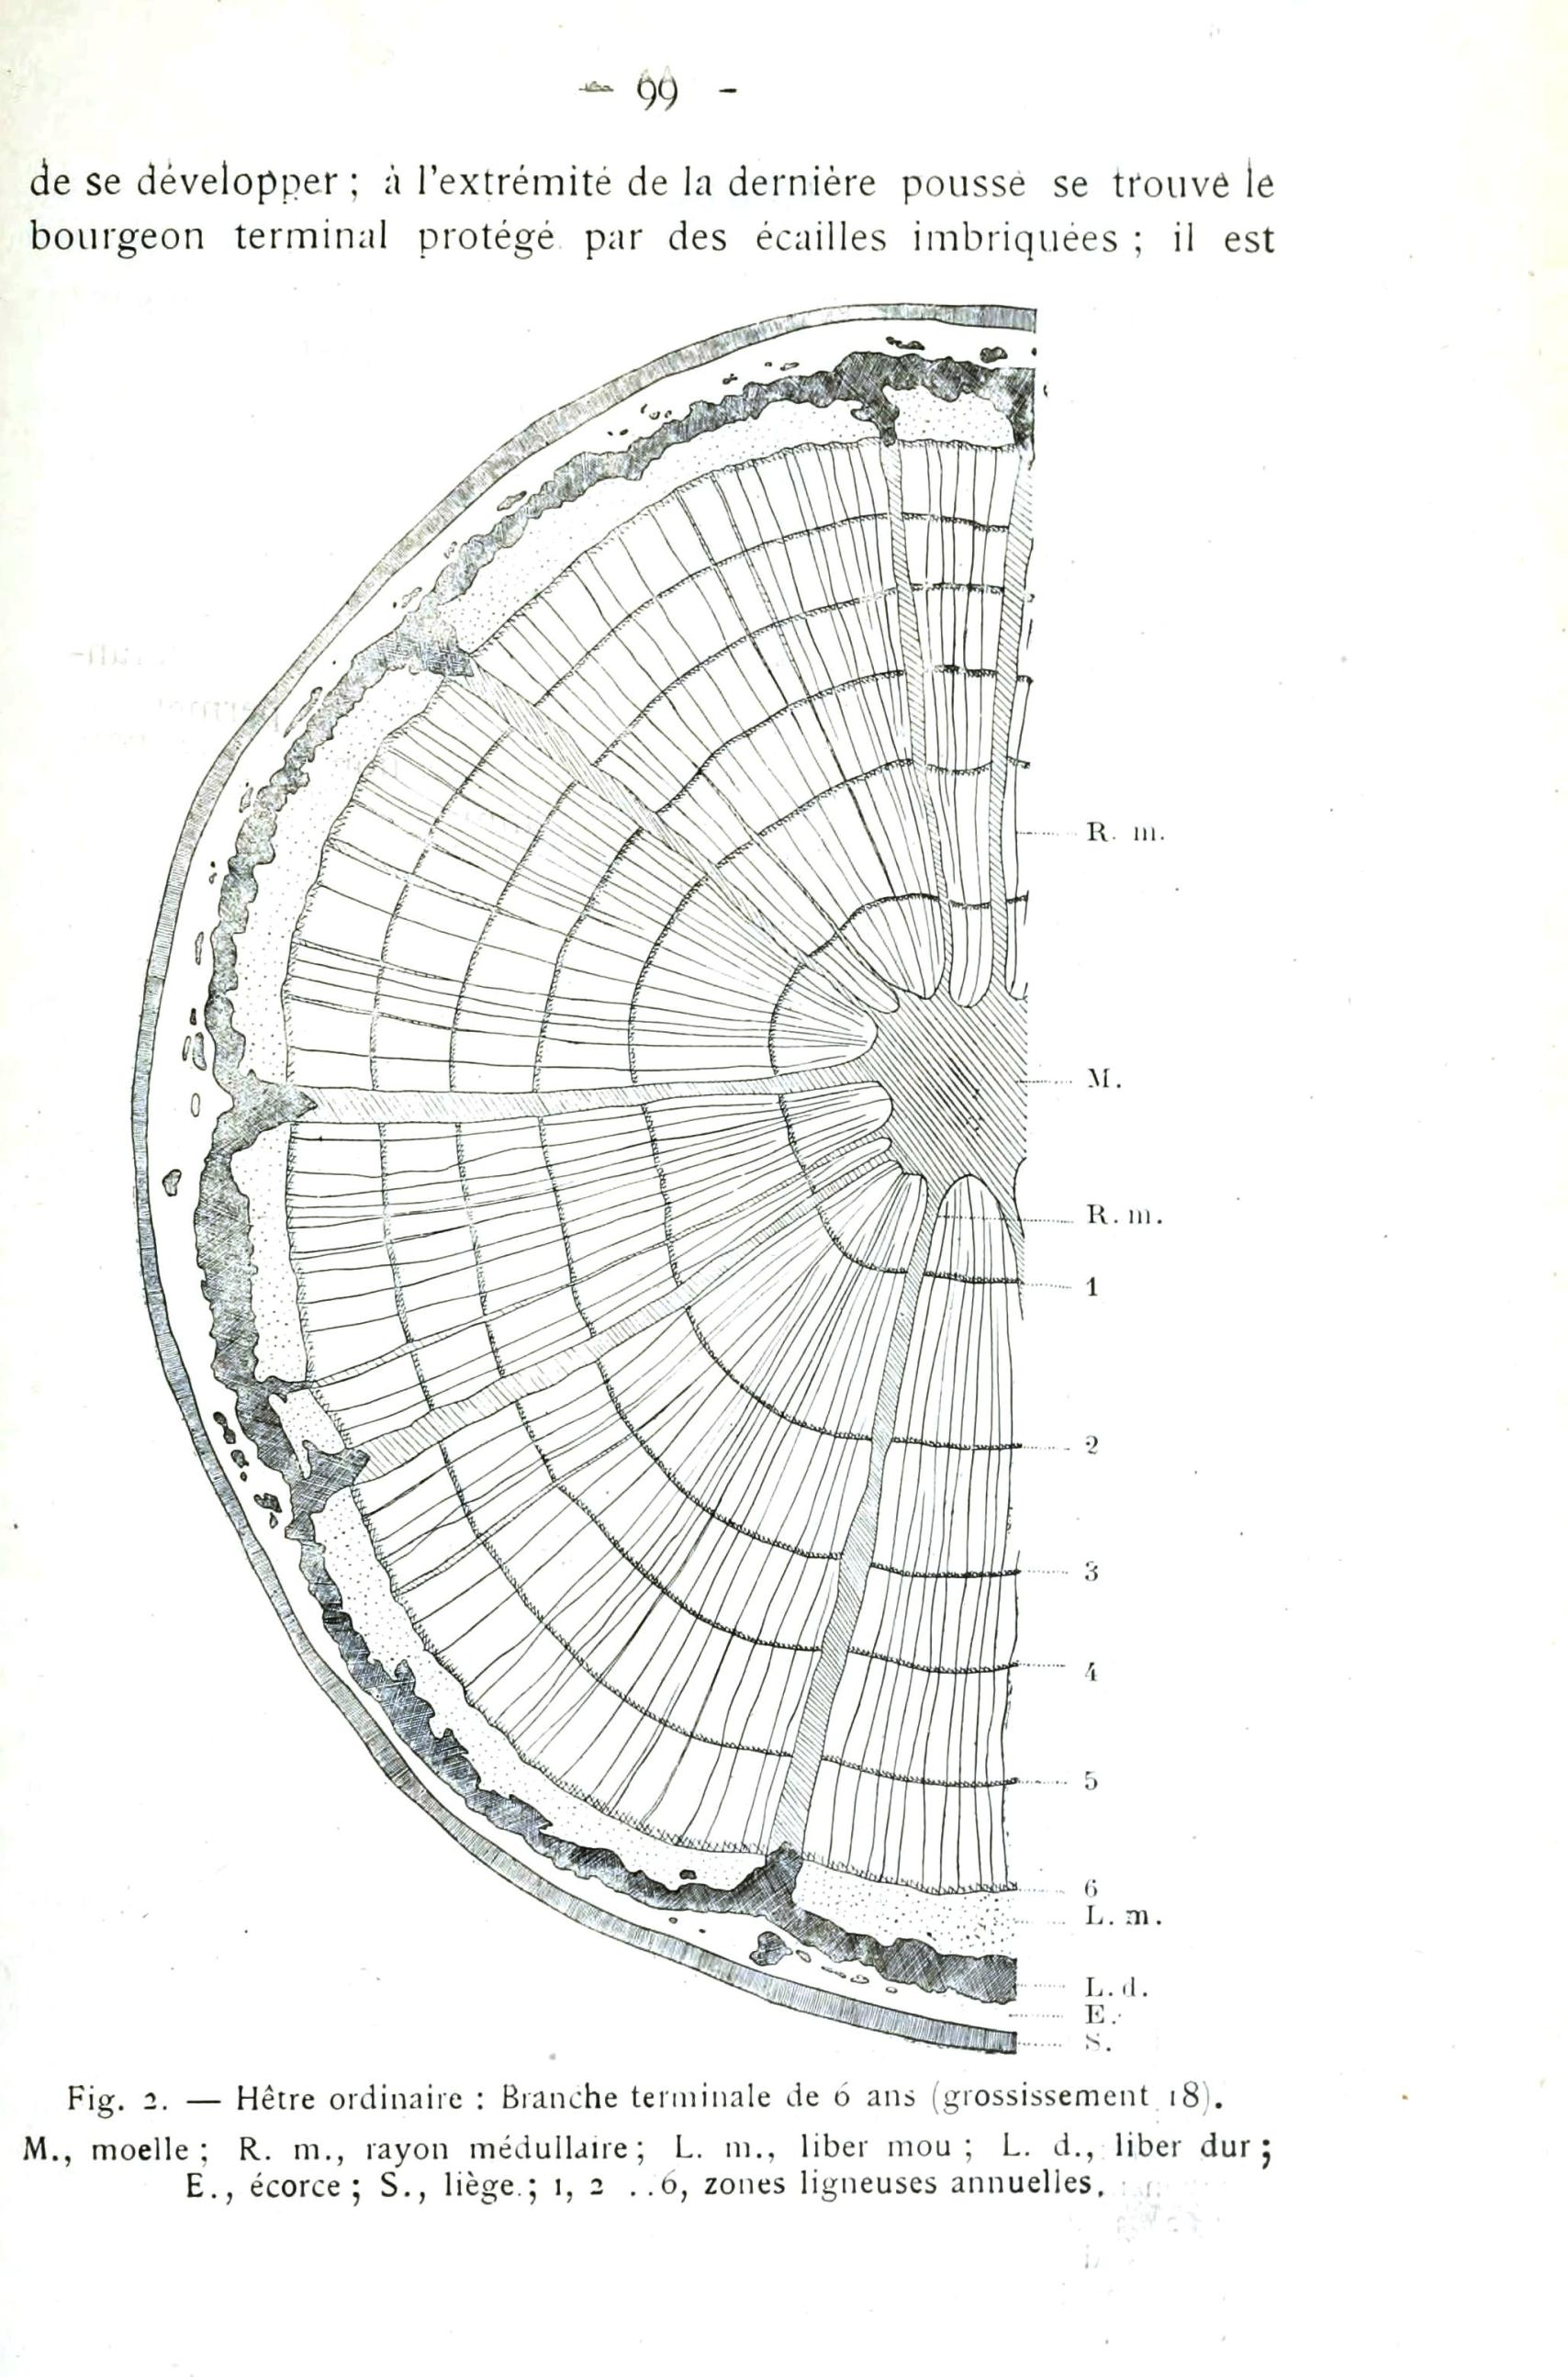 Botanical Tree Tree Ring Diagram